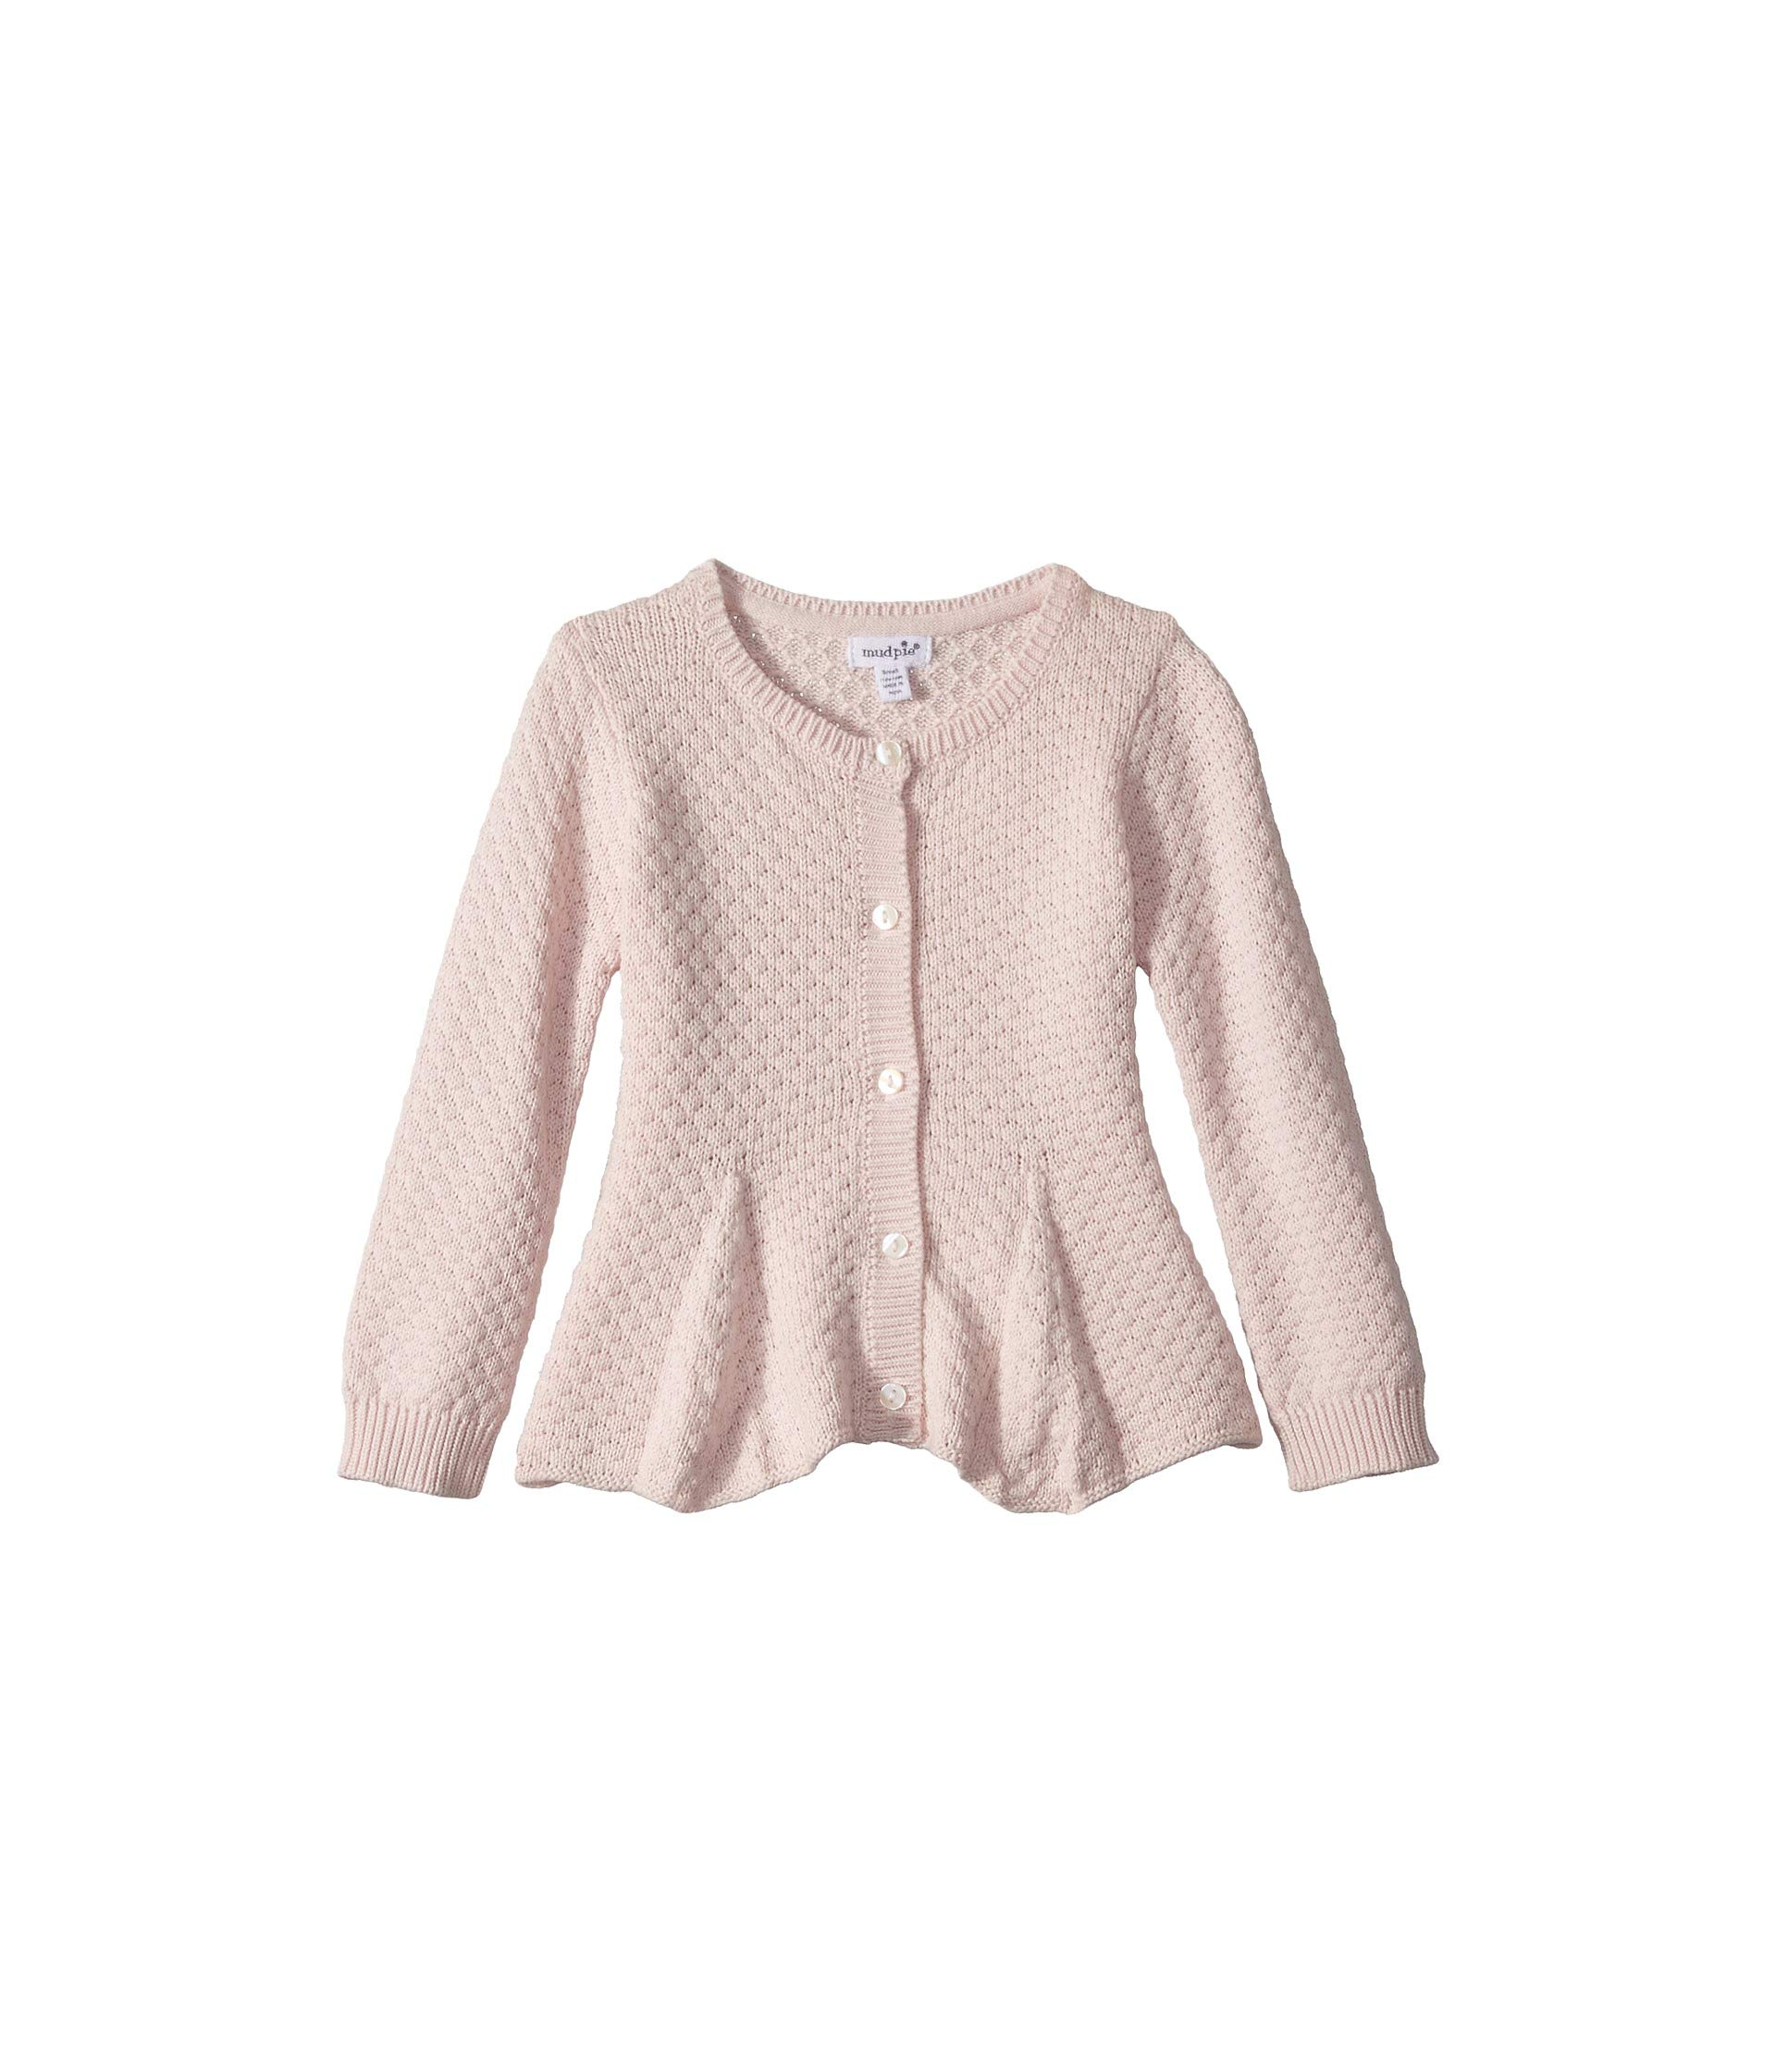 Mud Pie Baby Girl's Peplum Cardigan (Infant/Toddler) Pink MD (2T-3T Toddler) by Mud Pie